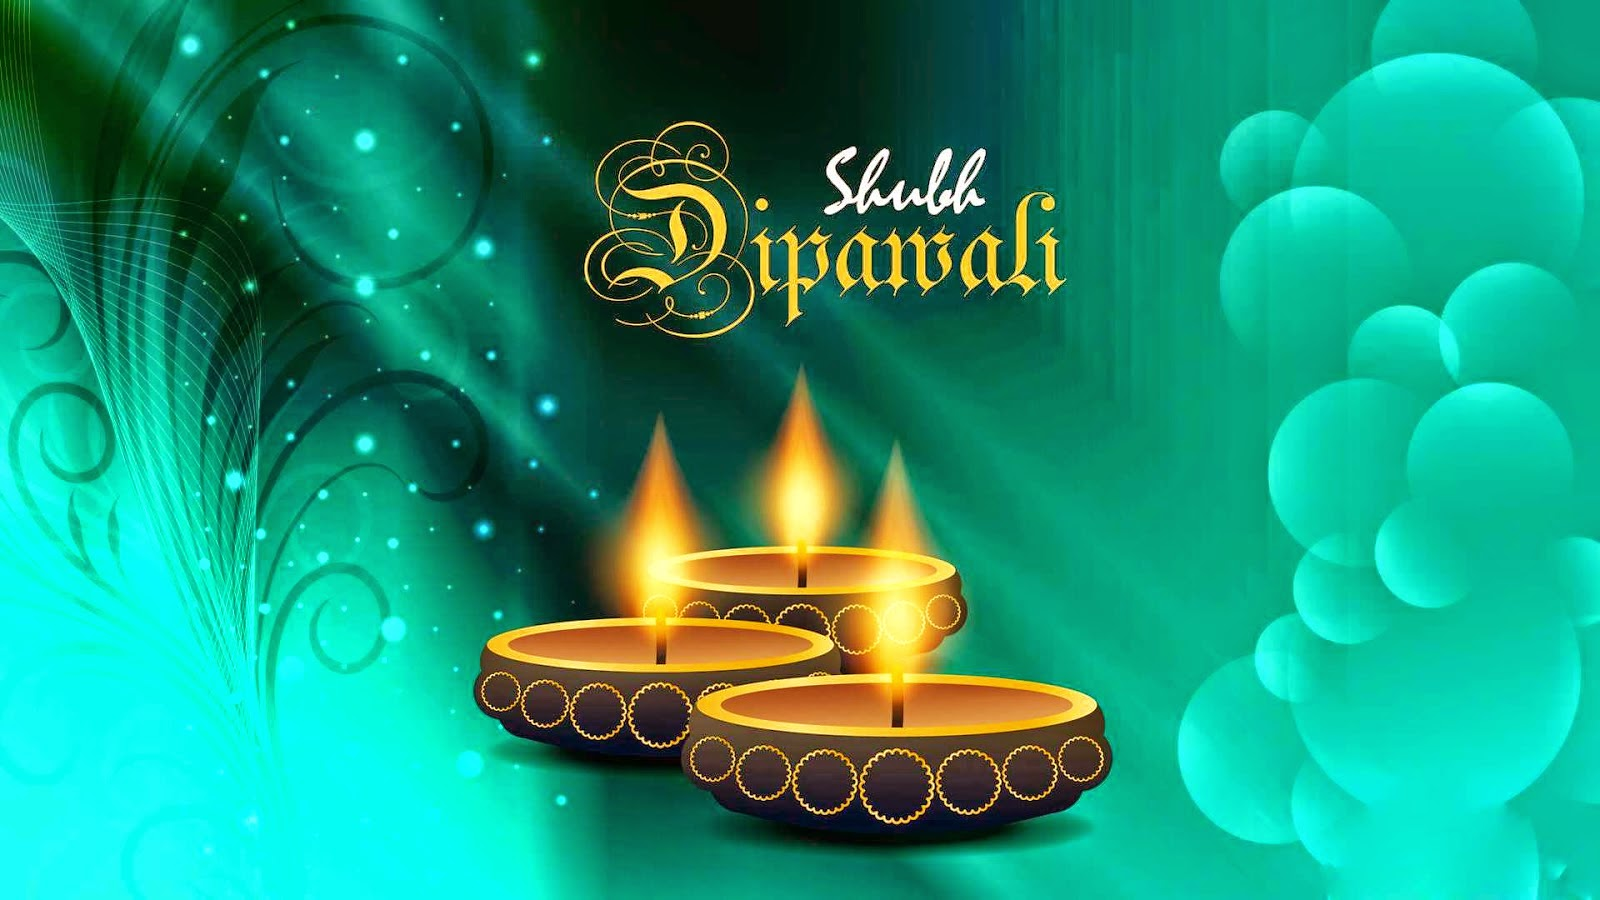 Happy deepavali images pictures